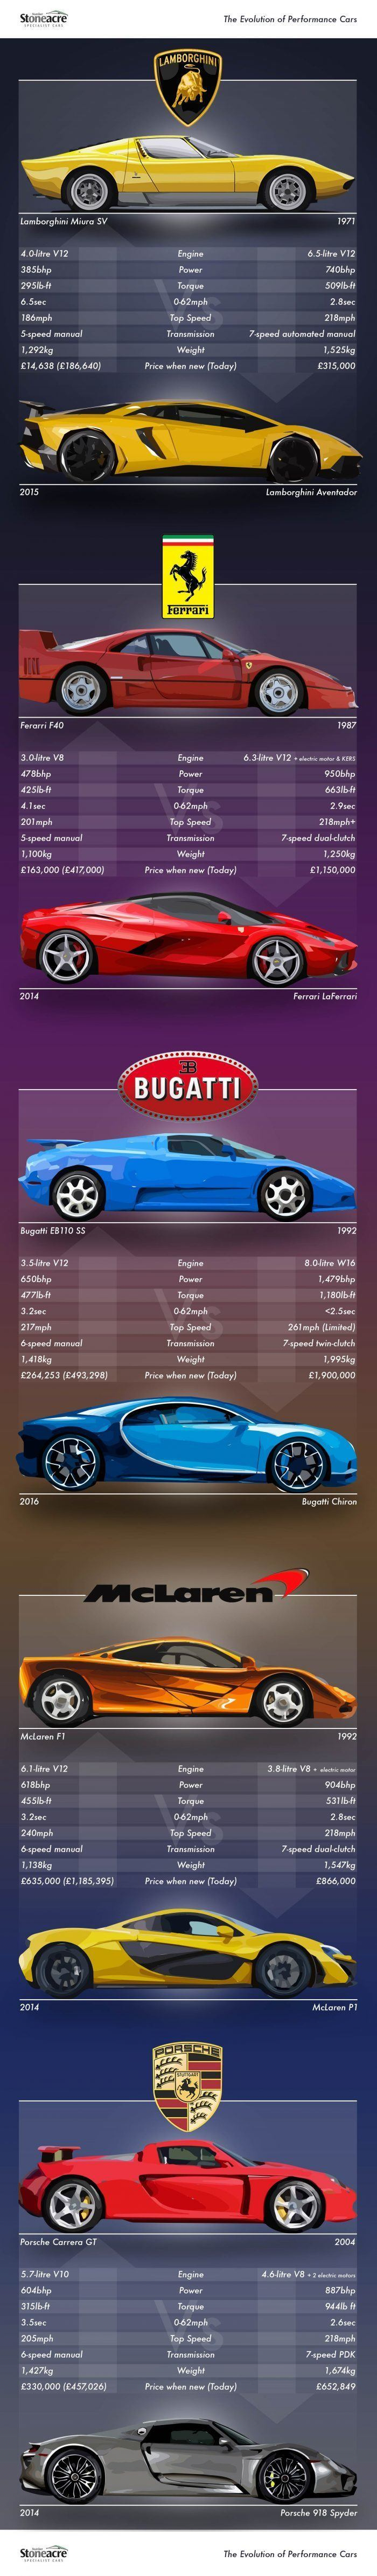 Performance Cars Comparision Chart